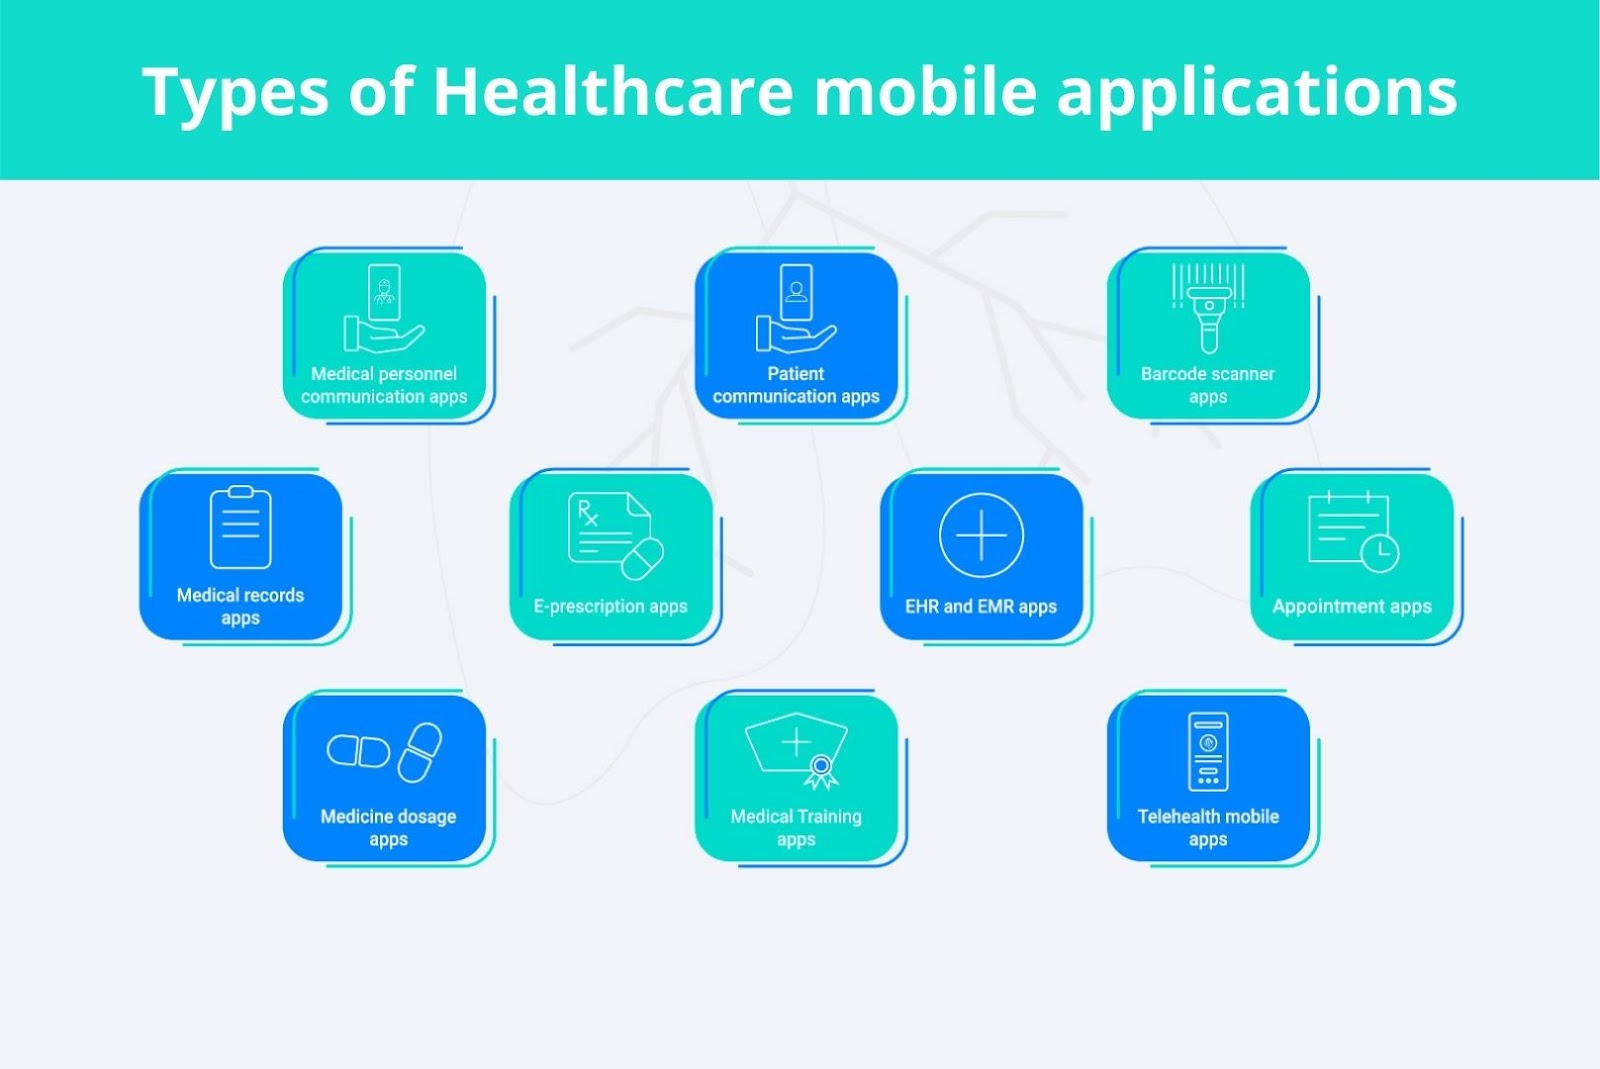 Types of Healthcare mobile applications